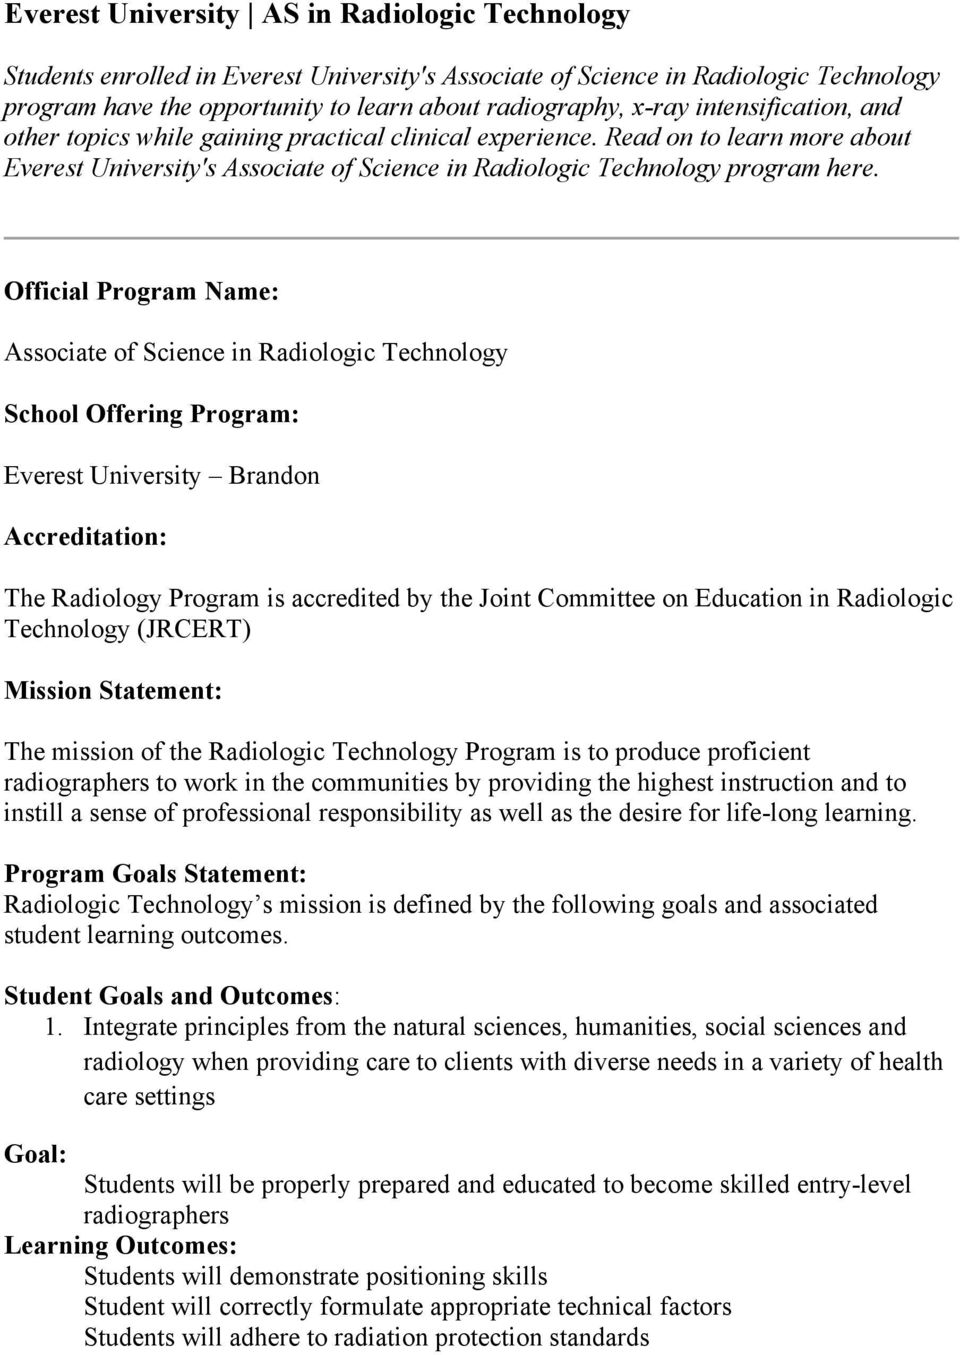 Official Program Name: Associate of Science in Radiologic Technology School Offering Program: Everest University Brandon Accreditation: The Radiology Program is accredited by the Joint Committee on